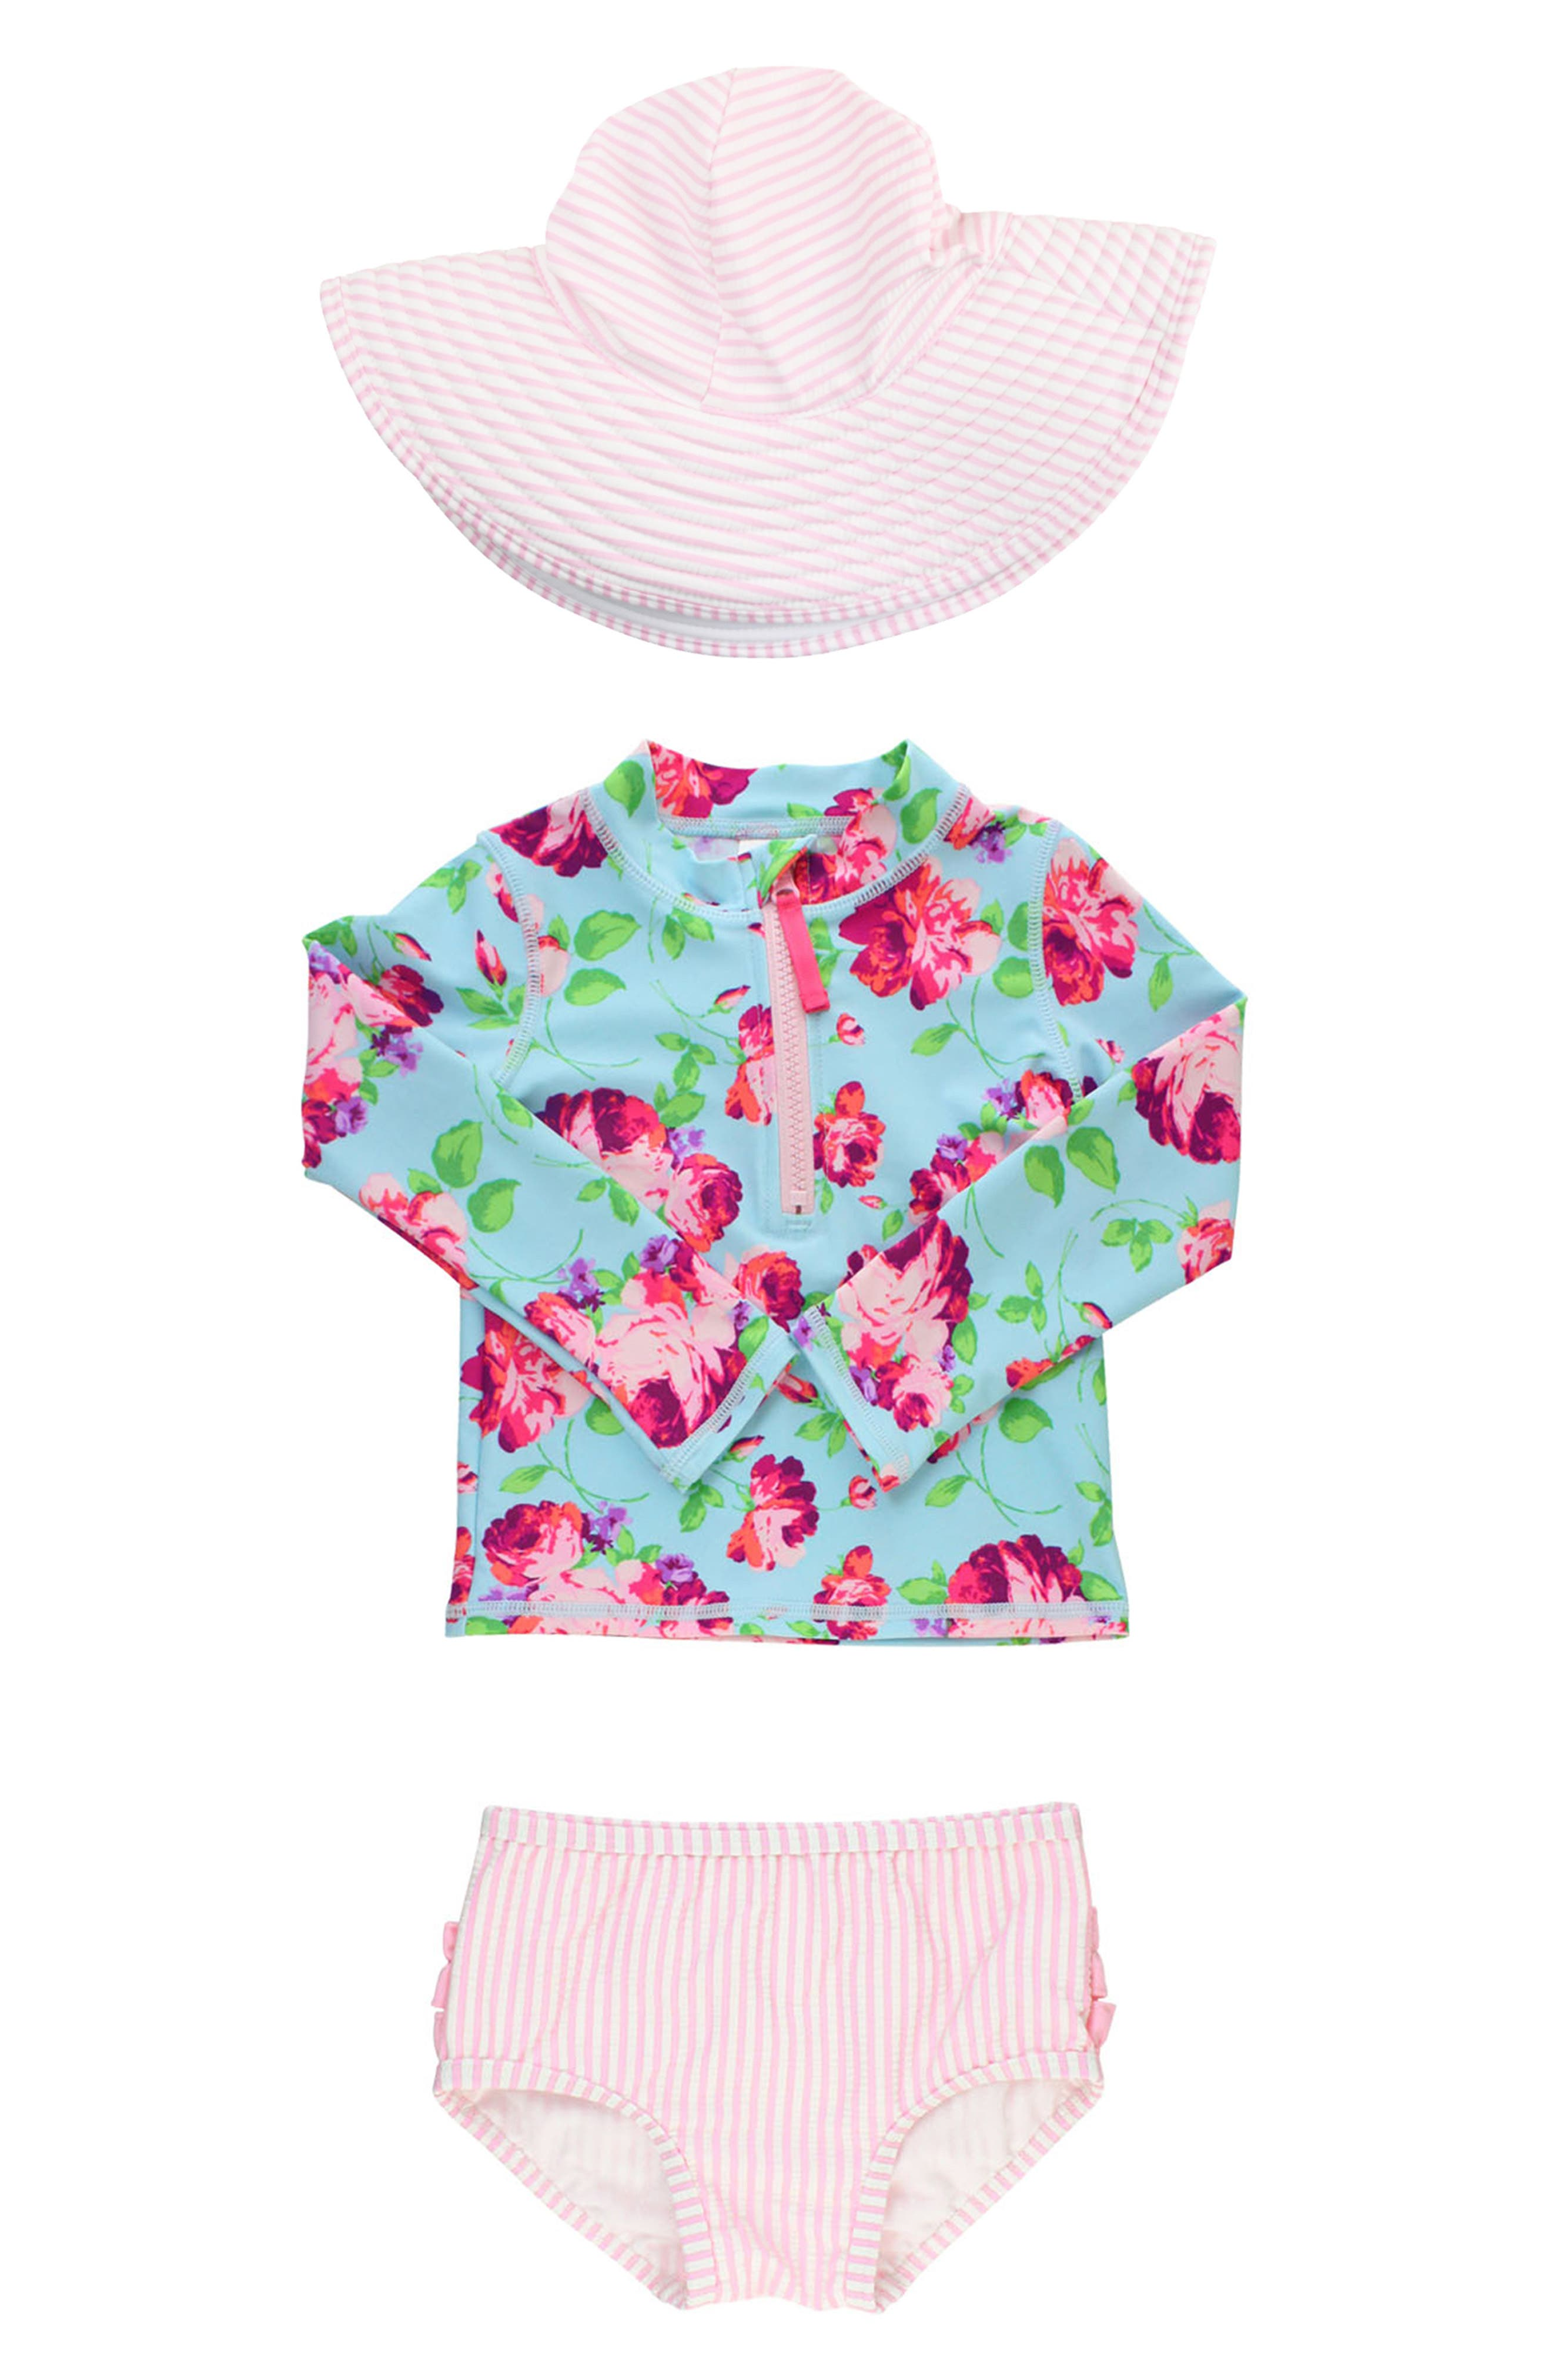 Infant Girls Rufflebutts Life Is Rosy TwoPiece Rashguard Swimsuit  Sun Hat Set Size 1218M  Pink